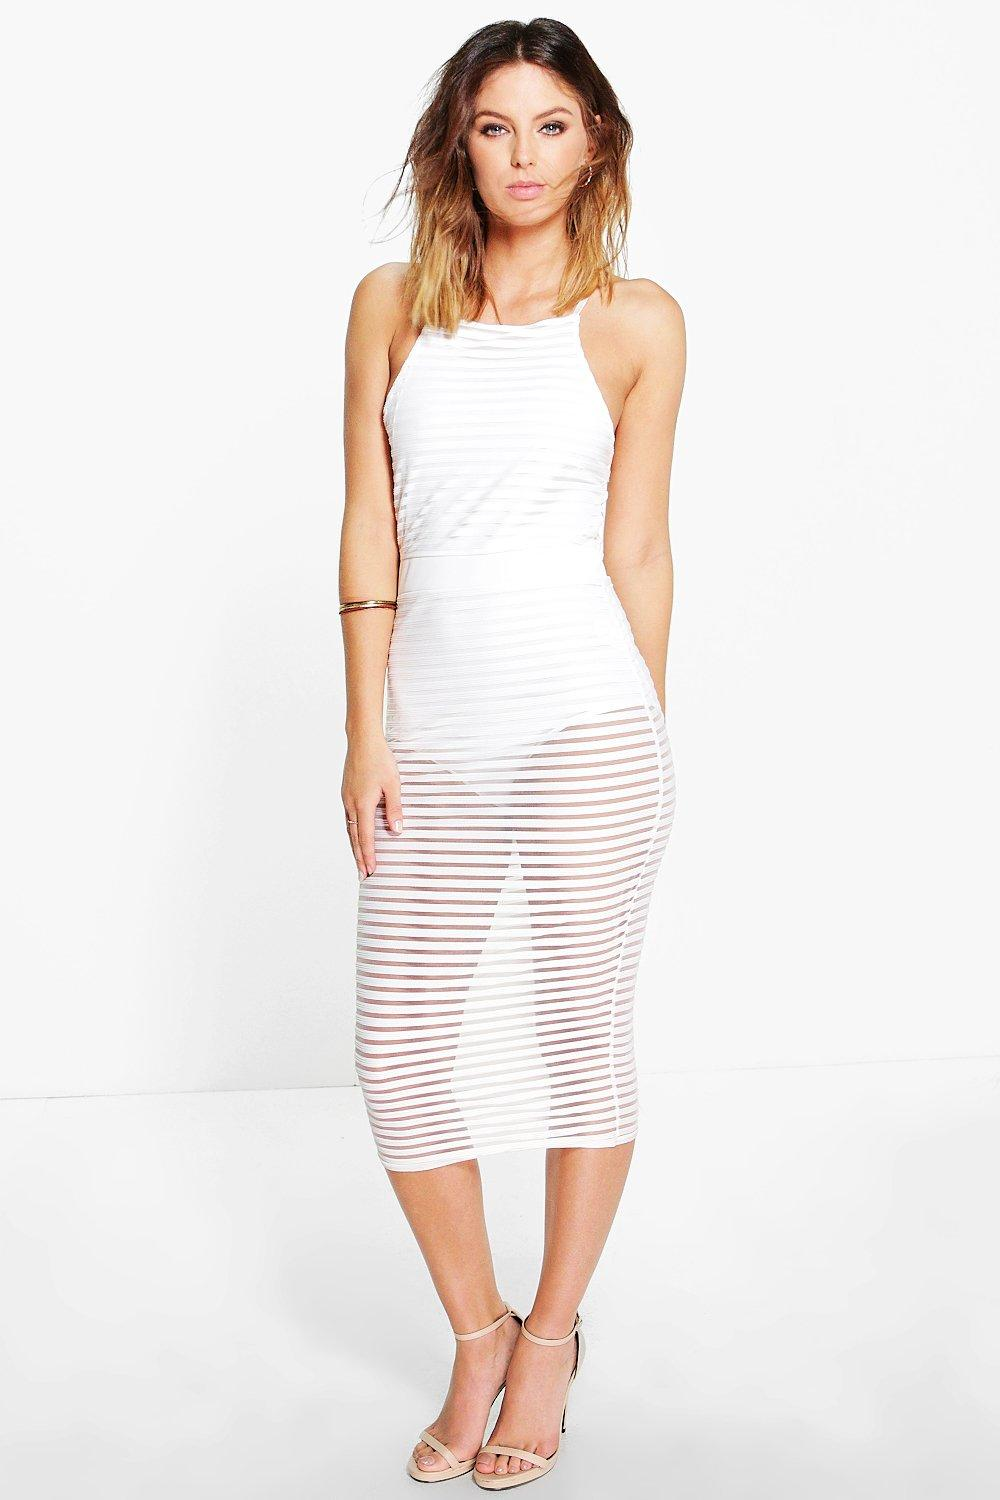 Eve Stripe Mesh Midi With Bodysuit Dress